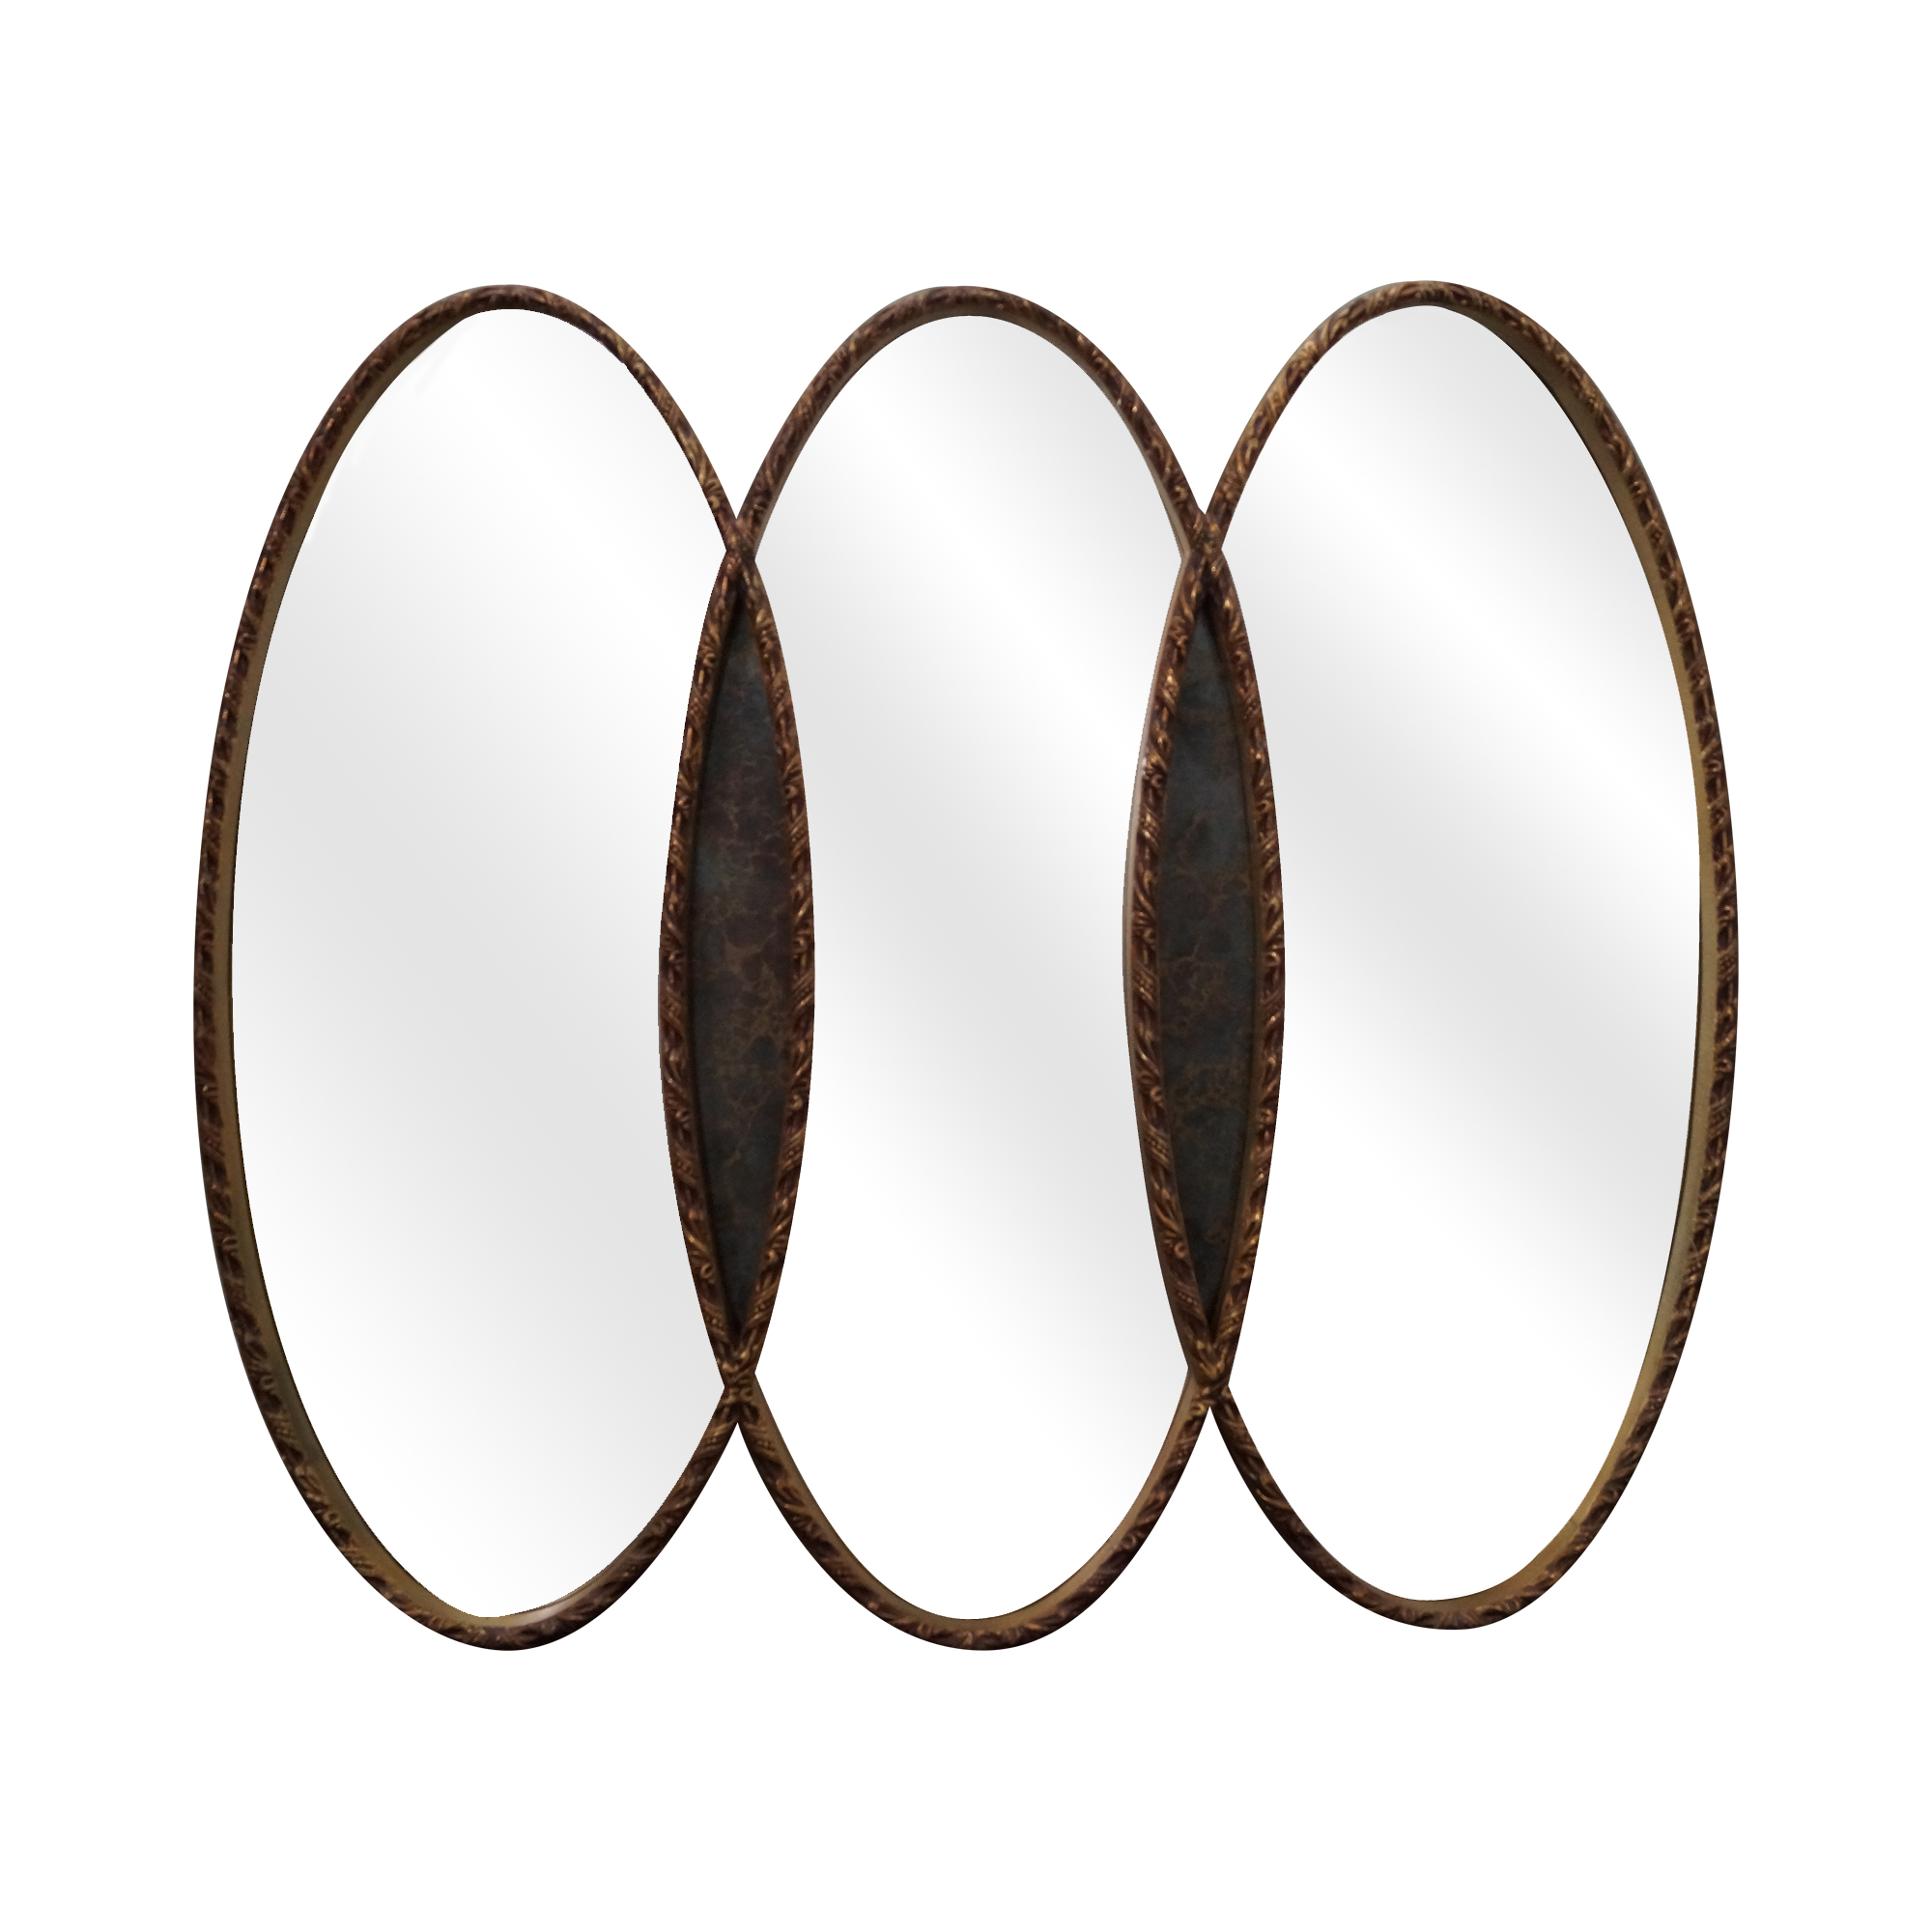 image of gold triple oval wall mirror